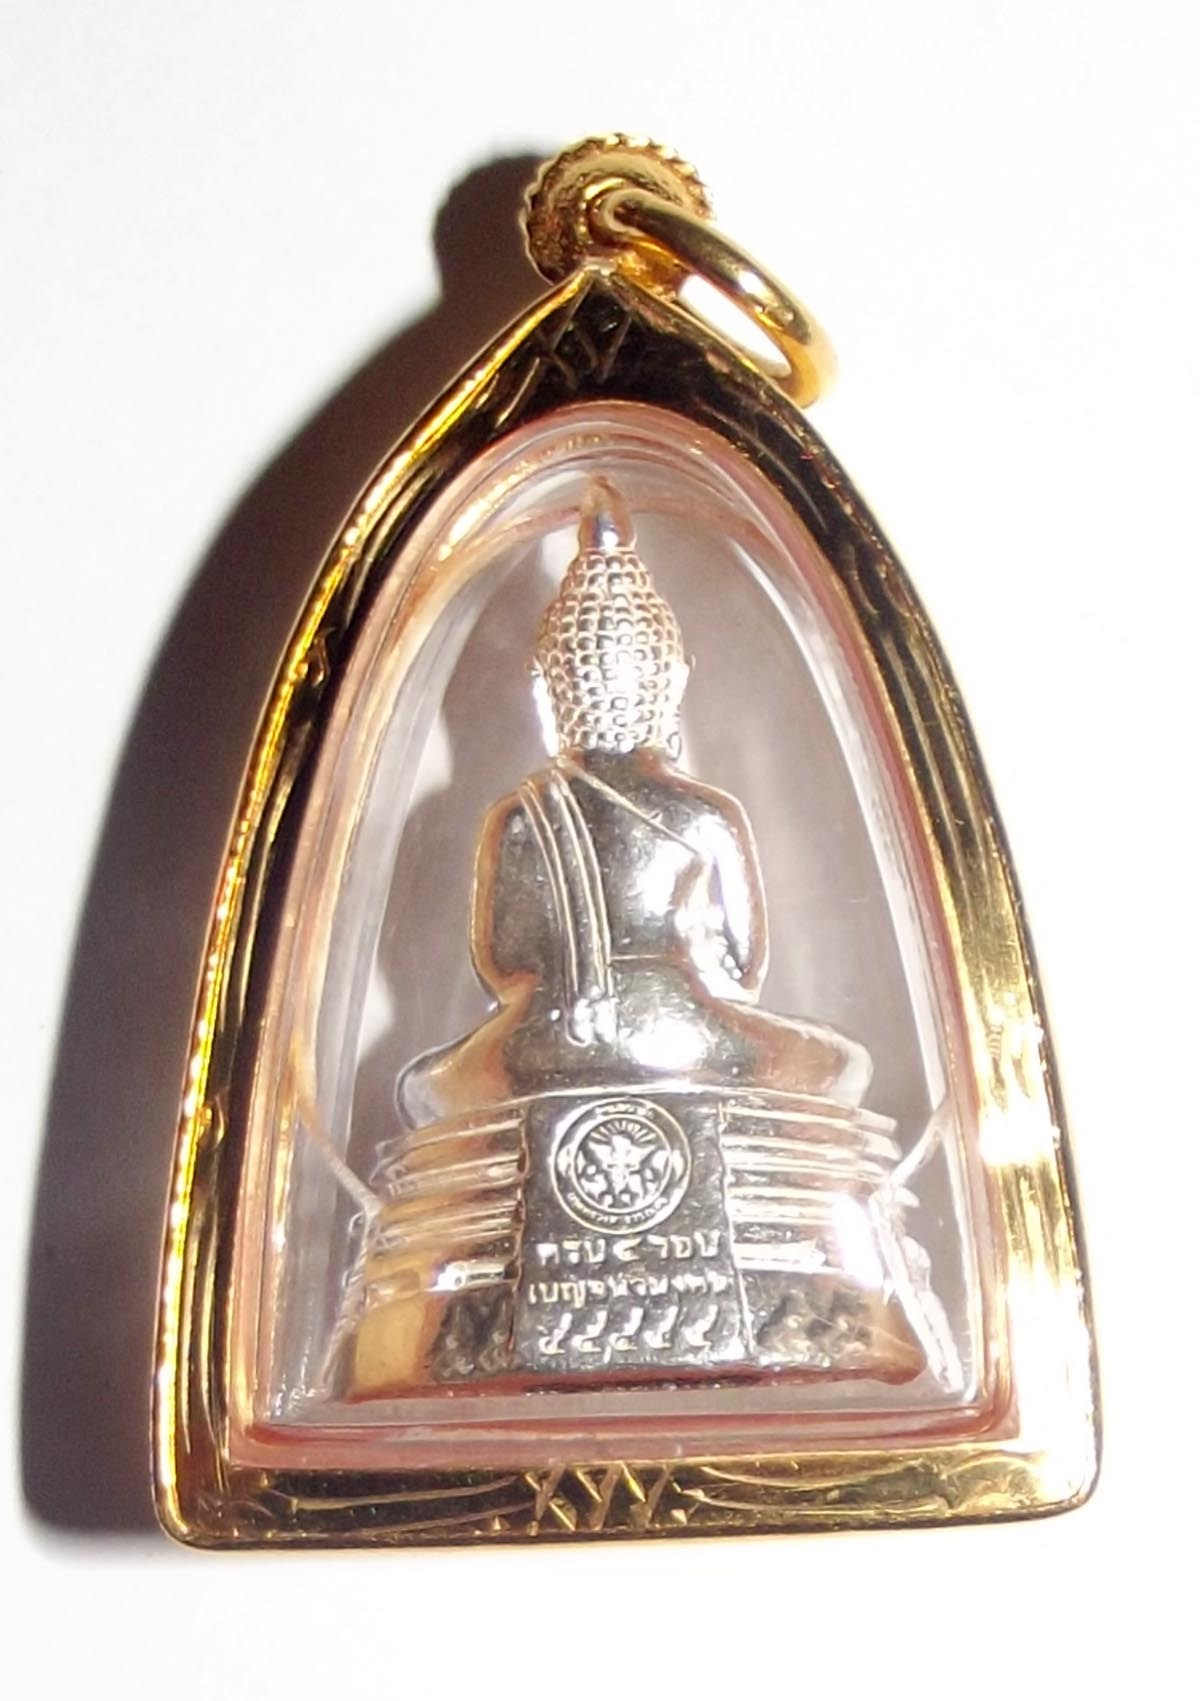 Luang Por Sotorn Statuette amulet in solid silver with solid gold luxury casing